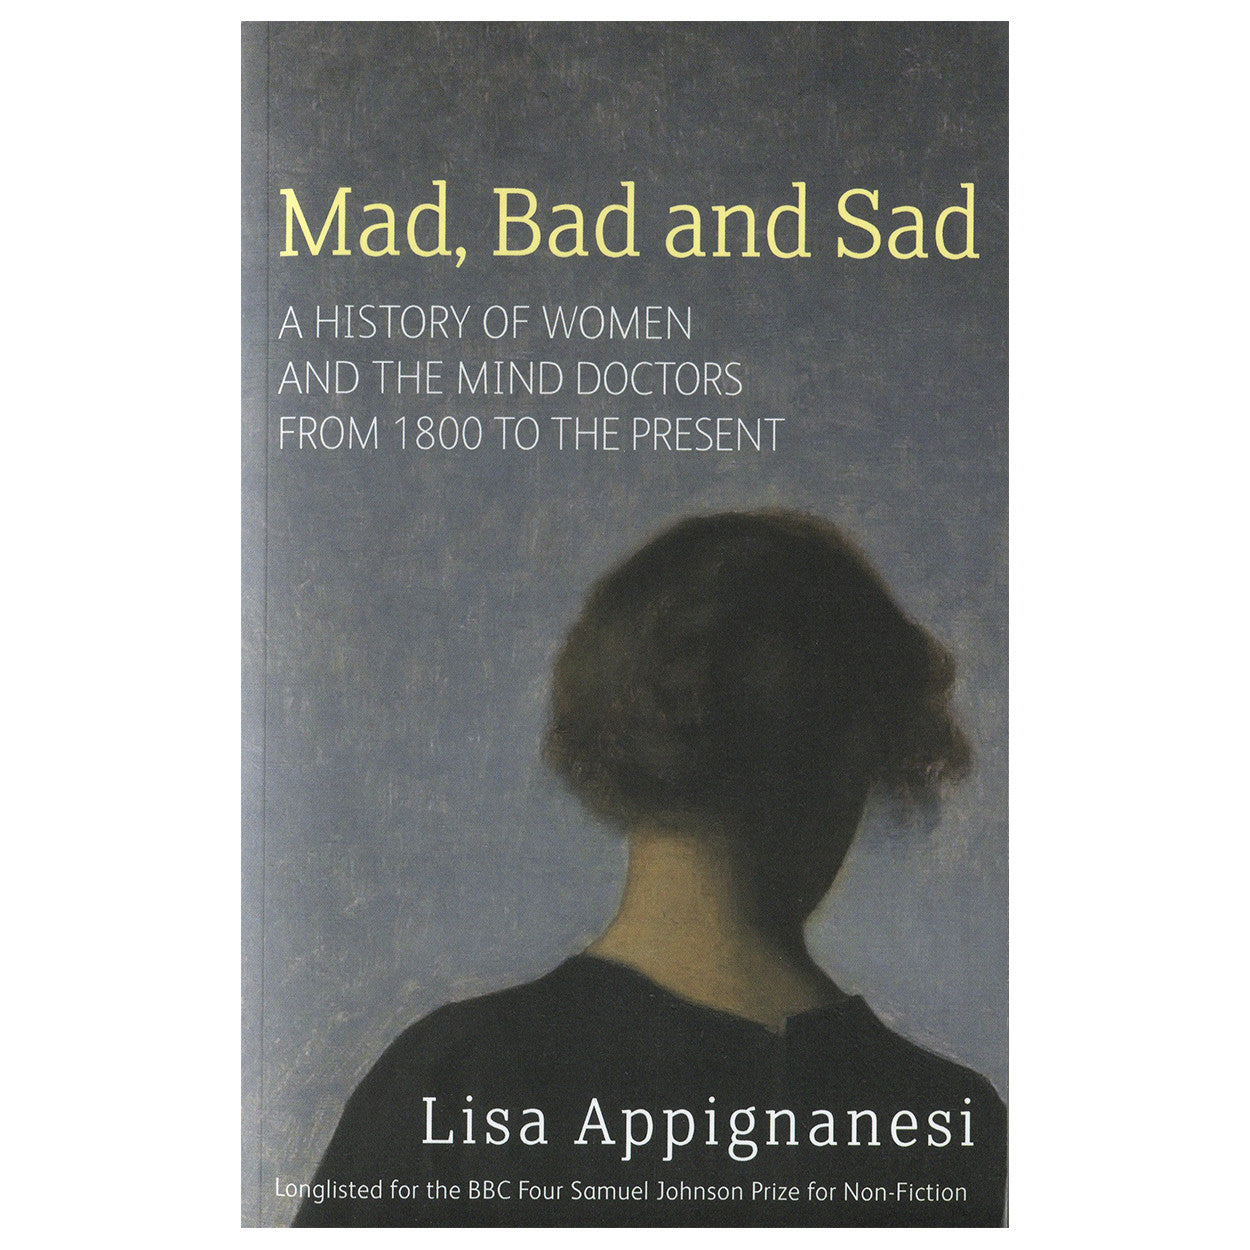 Mad, Bad and Sad: The History of Women and the Mind Doctors from 1800 to  the Present - Lisa Appignanesi